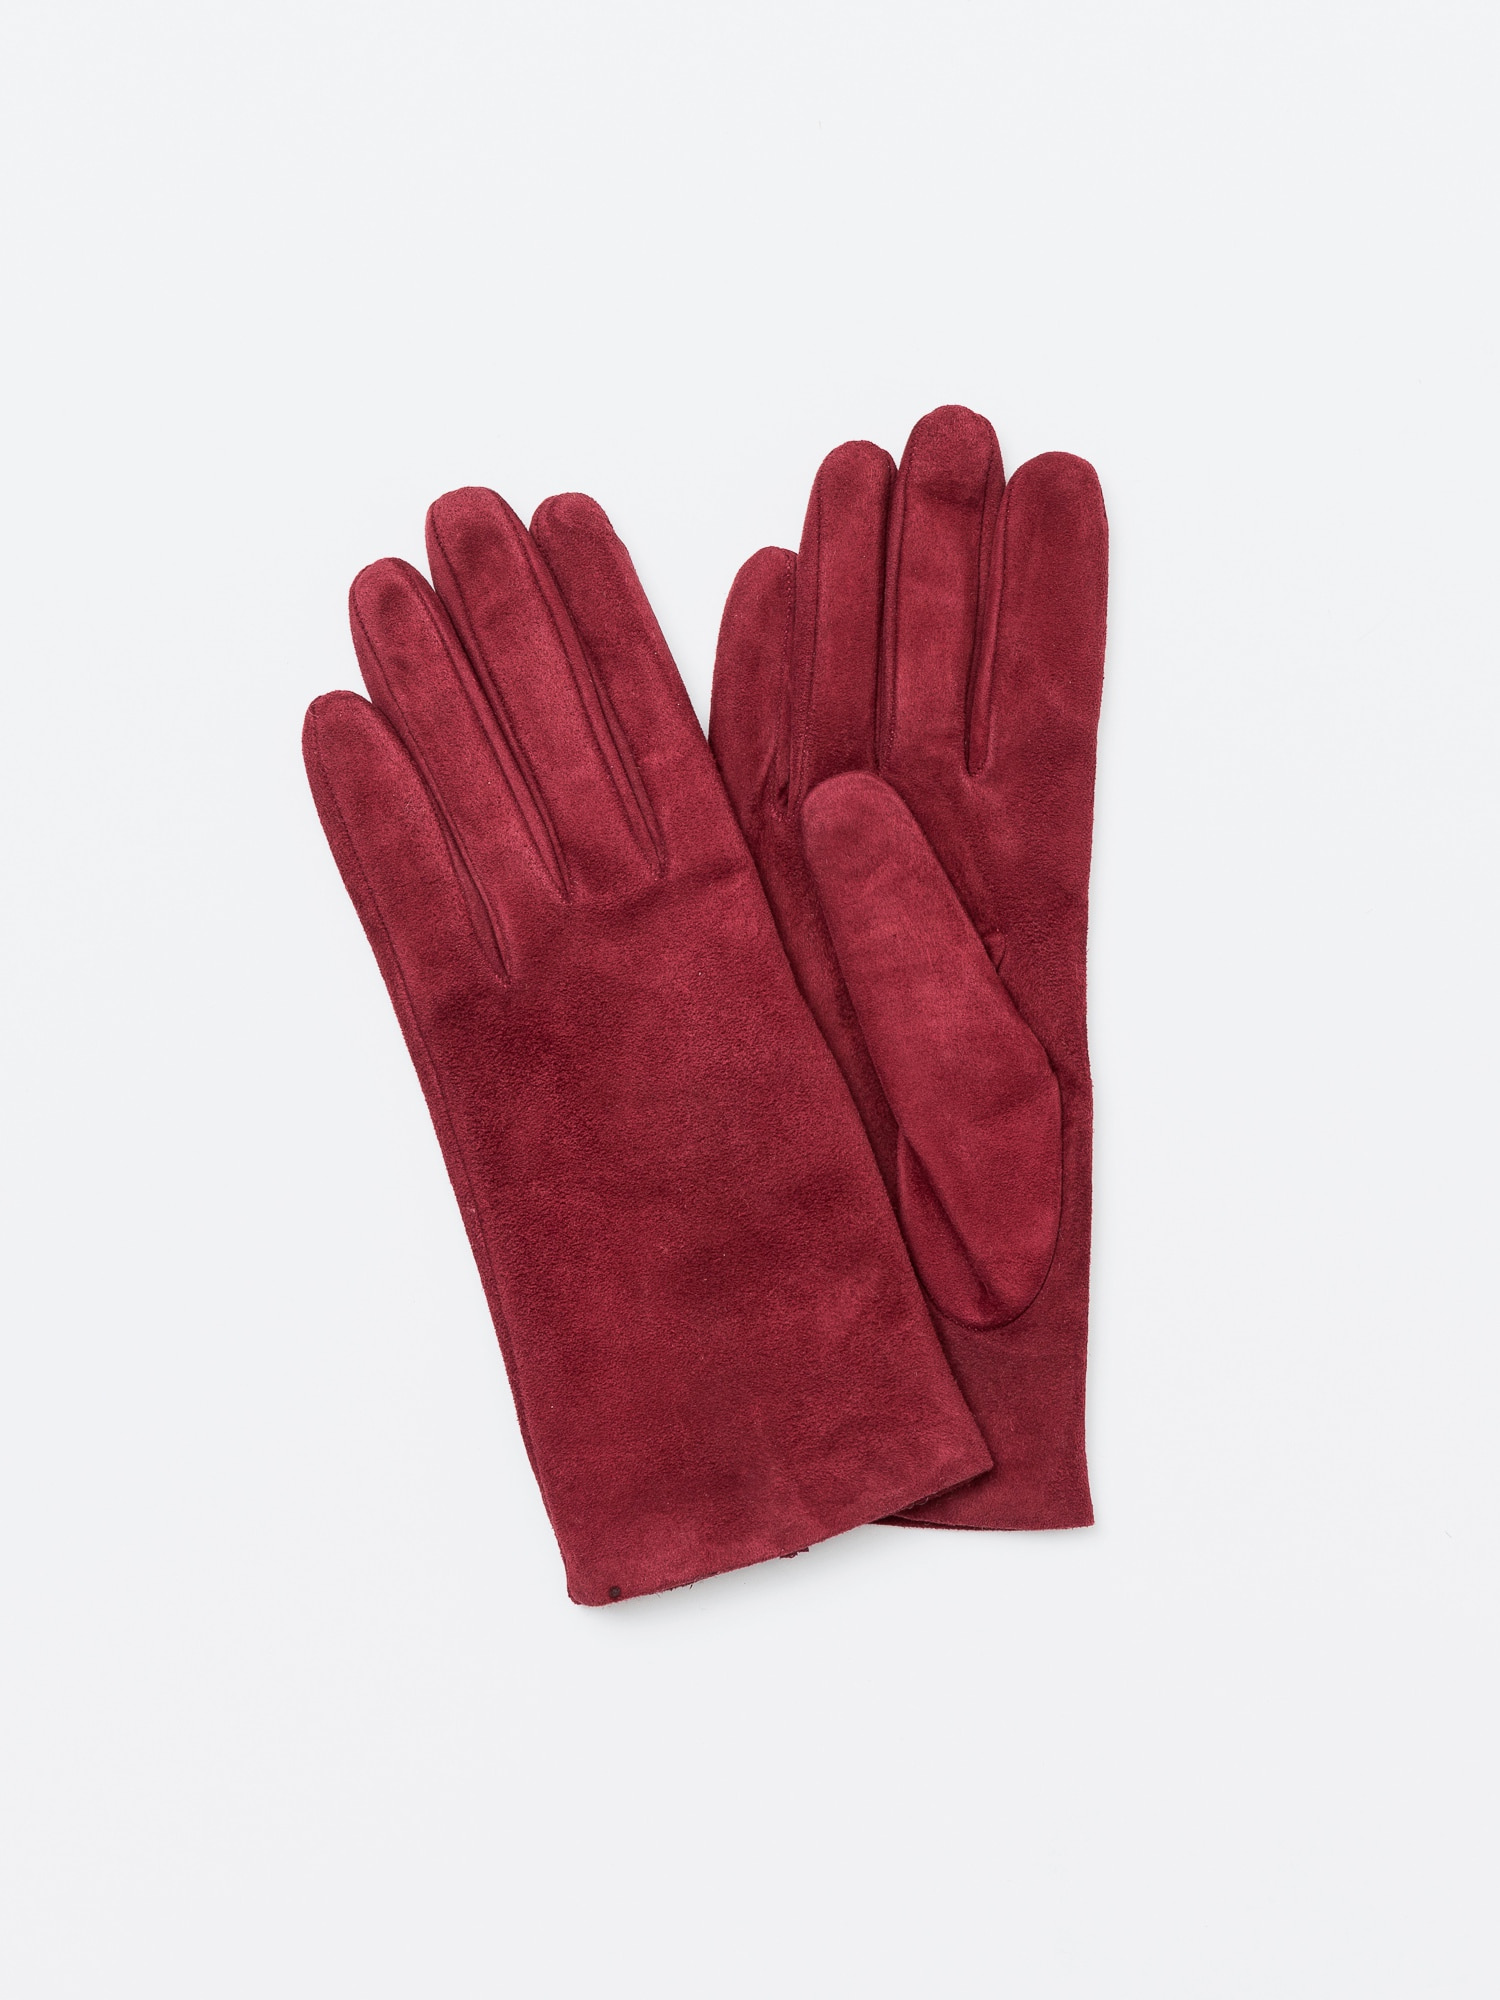 Omega gloves Nappa Bordeaux Suede (Woman)오메가글러브